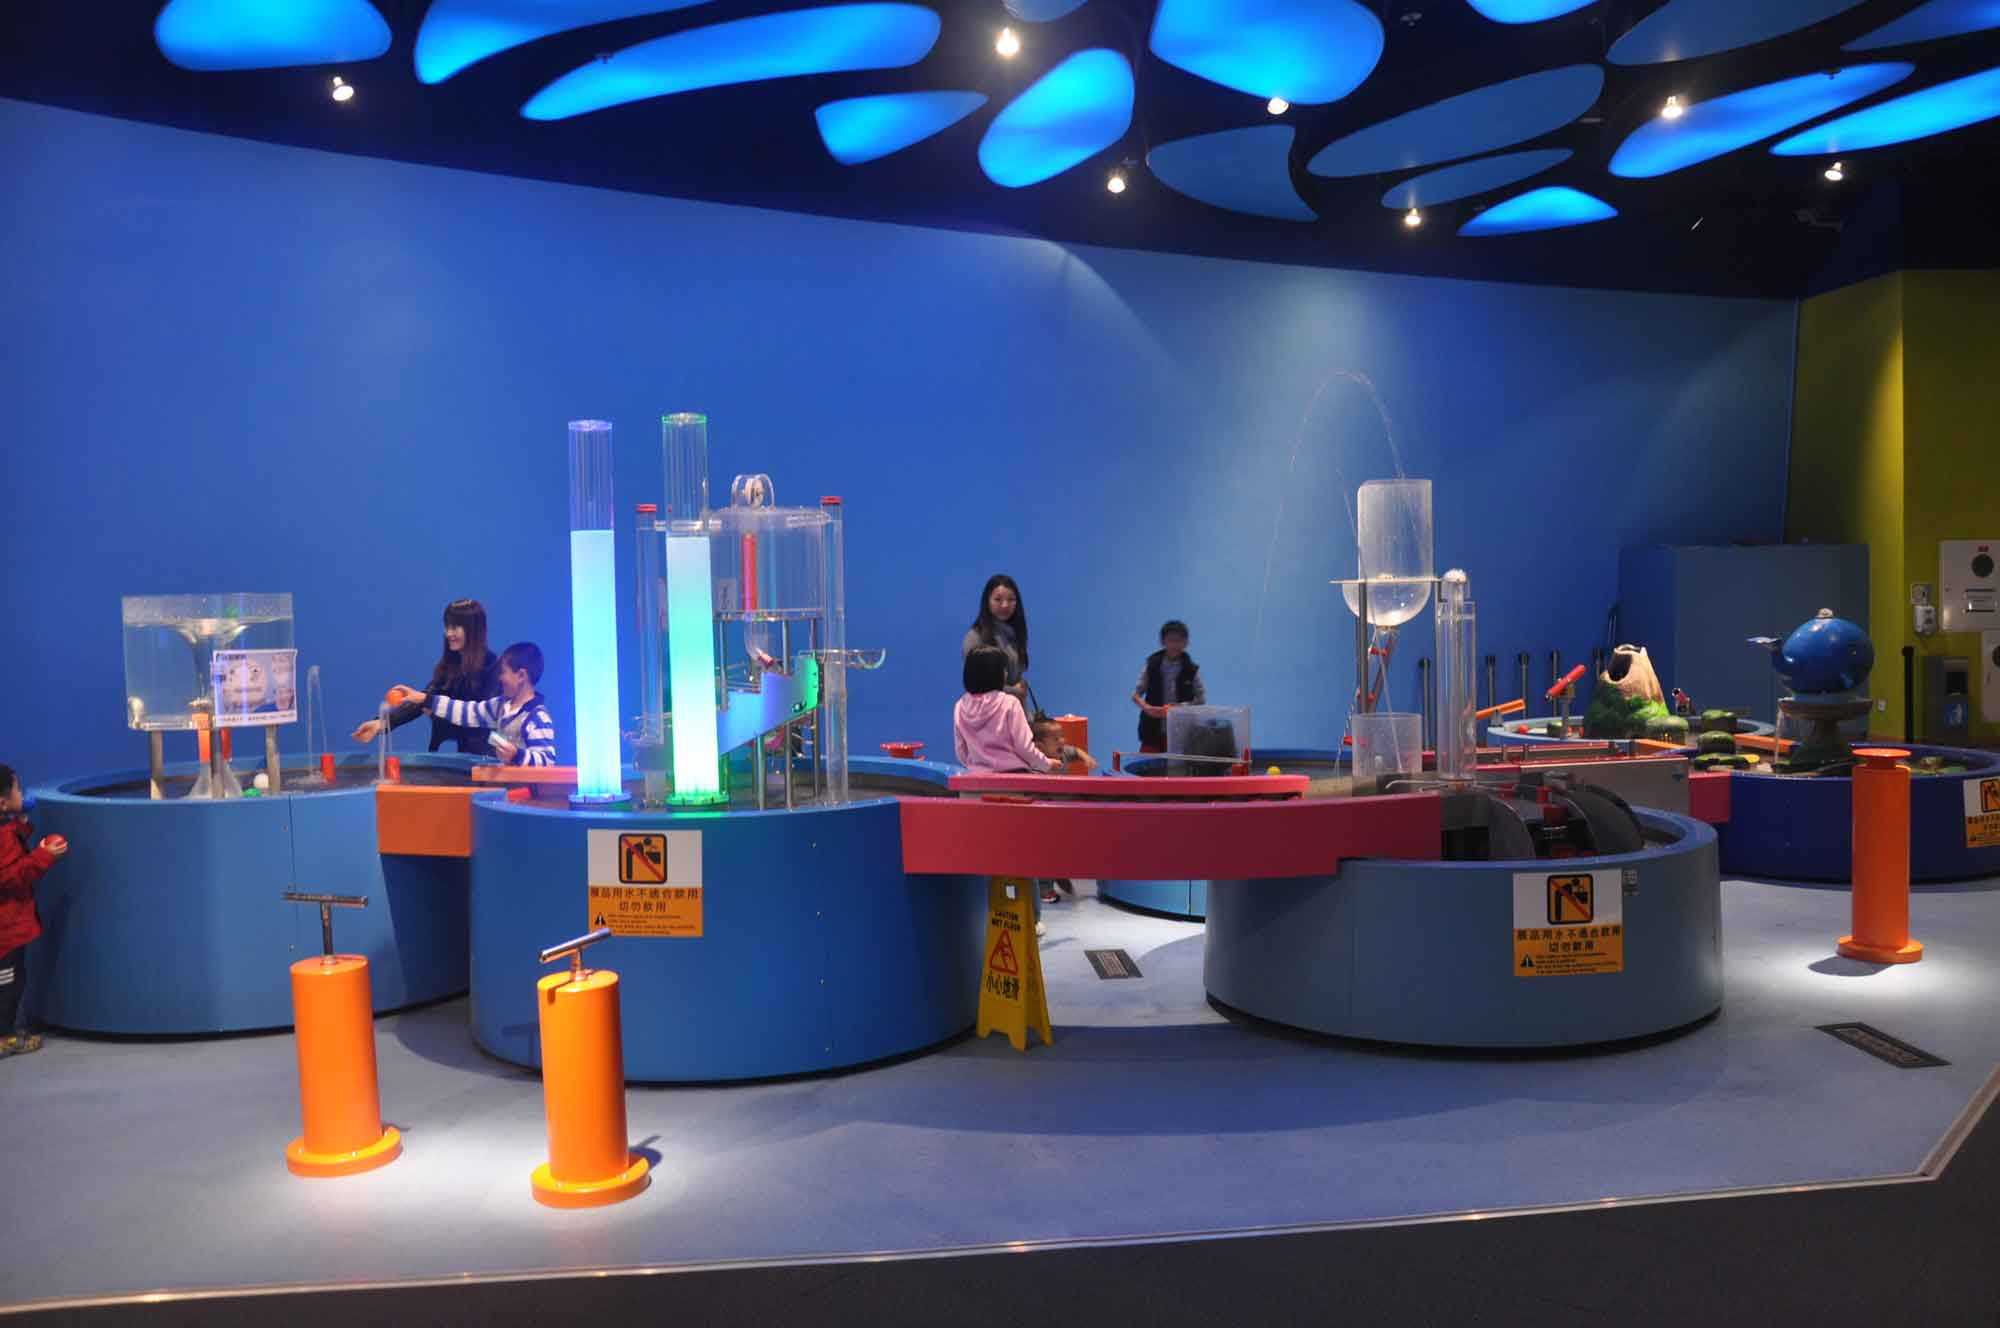 Science Center Macau children play area